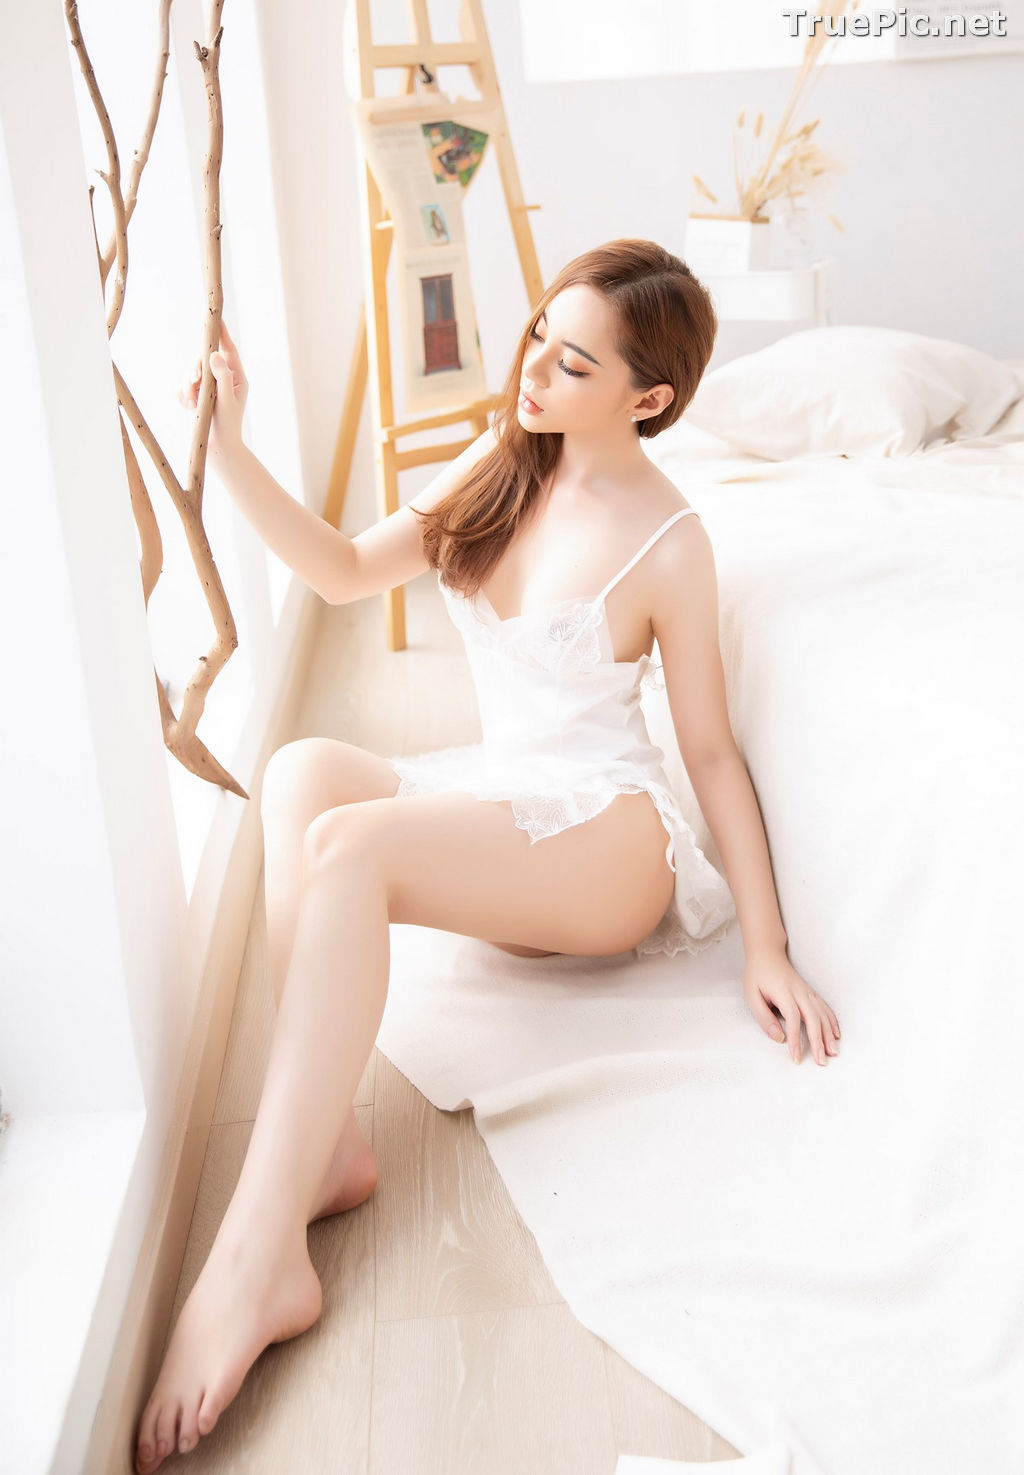 Image Vietnamese Model – Hot Beautiful Girls In White Collection #2 - TruePic.net - Picture-10